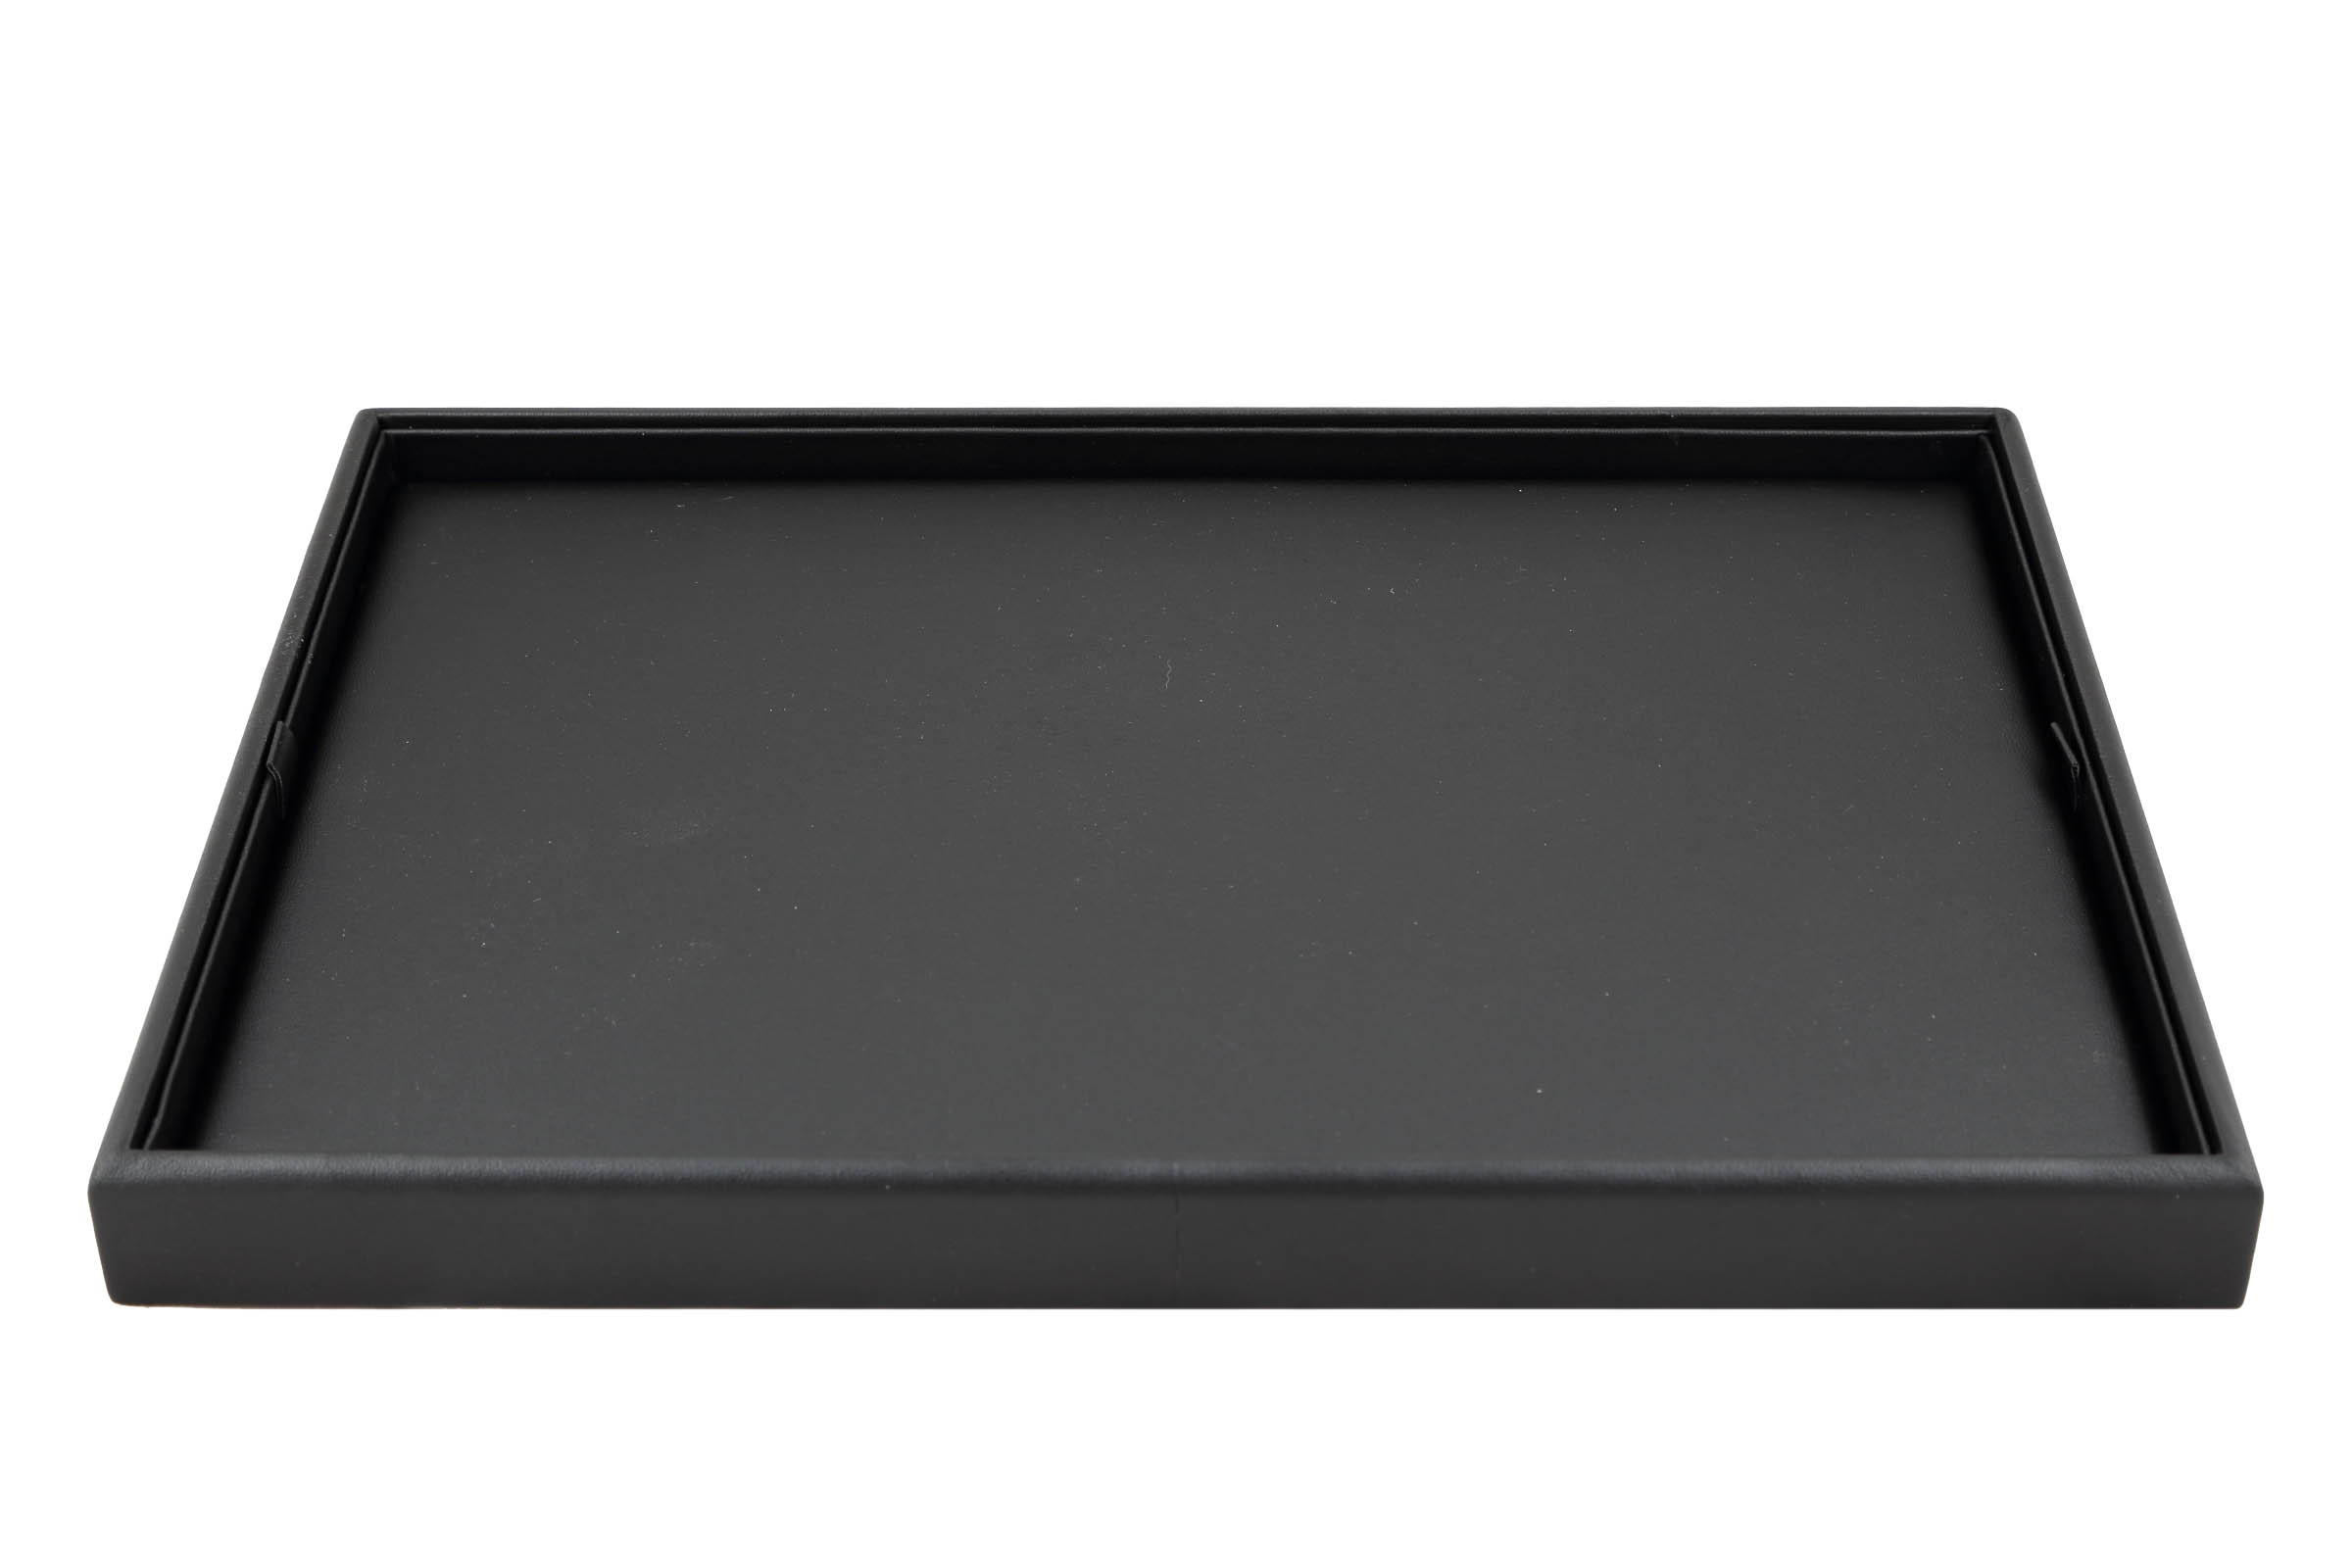 1 x Black Premium Soft Padded Leatherette Plain Presentation Tray. Stackable. Dim 315(w) x 225(d) x 27mm(h).